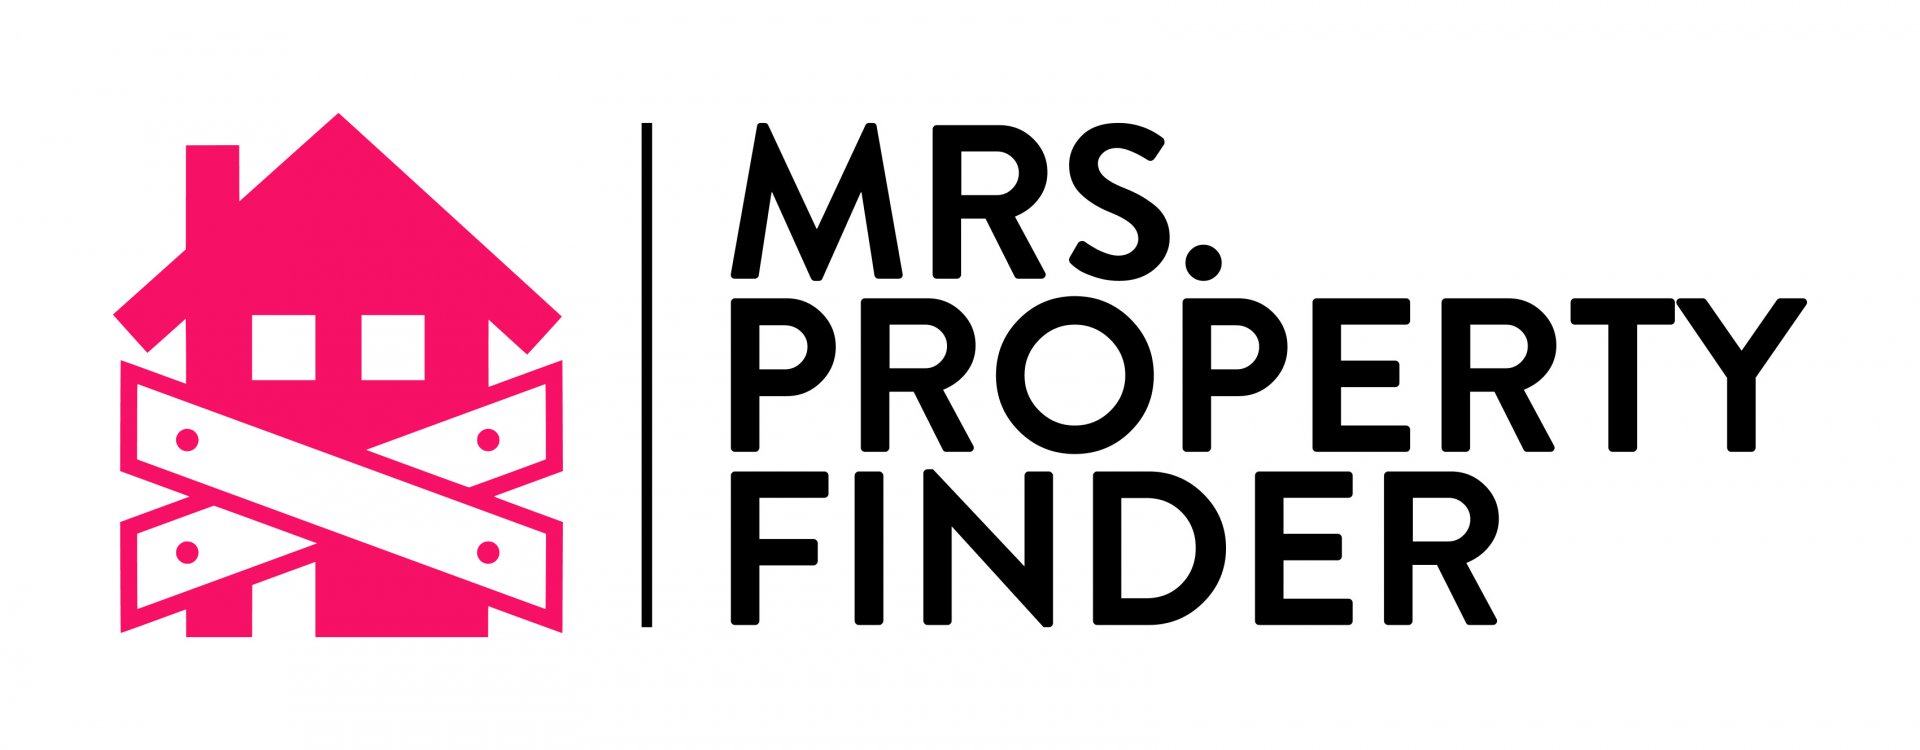 Mrs. Property Finder logo